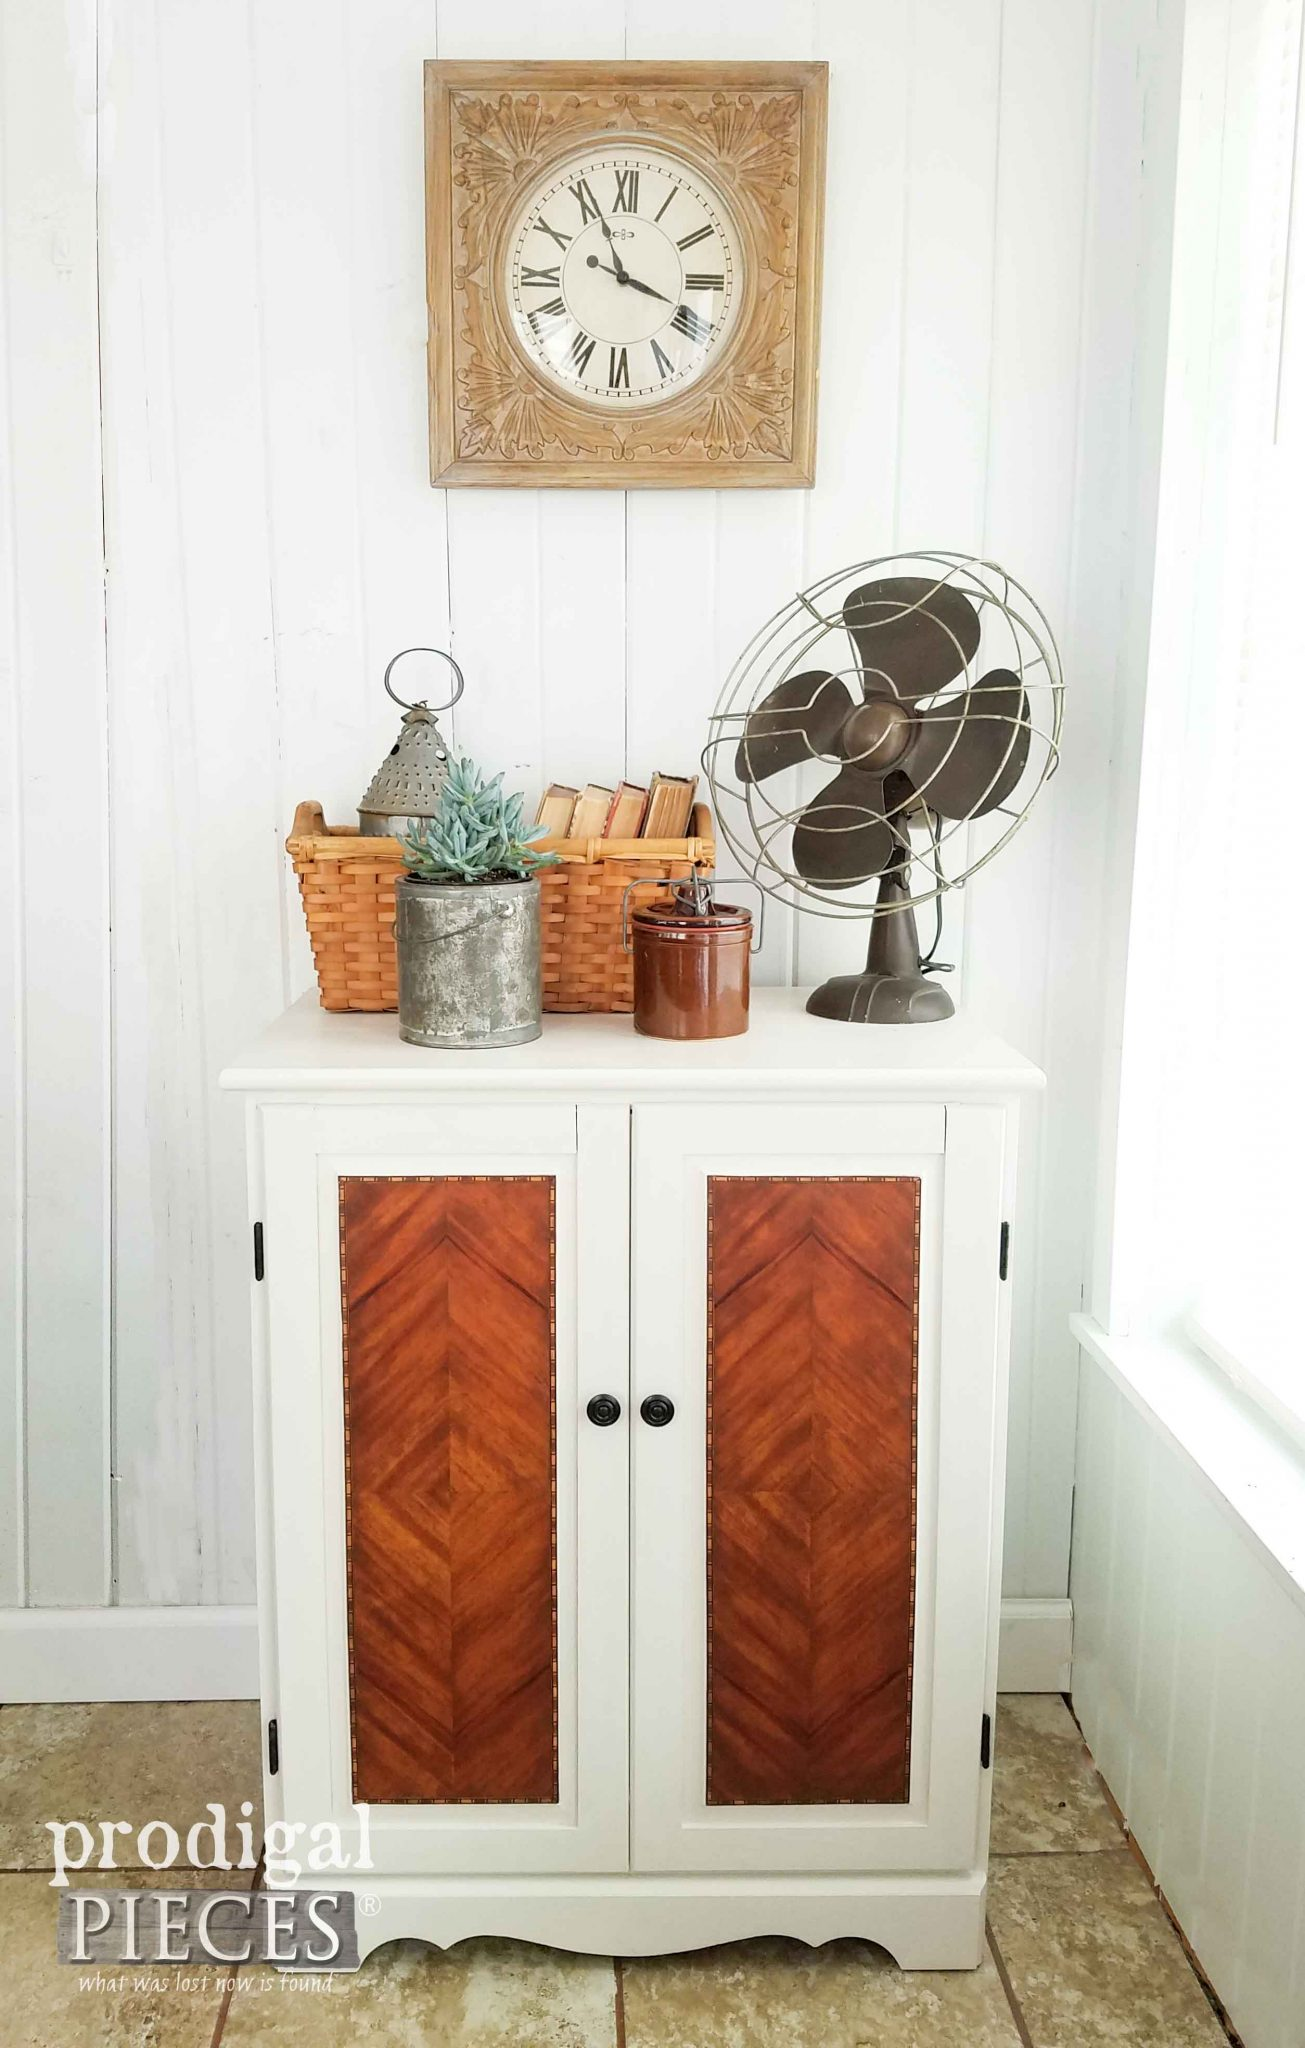 Cabinet Makeover with a Farmhouse Chic Twist by Prodigal Pieces | prodigalpieces.com